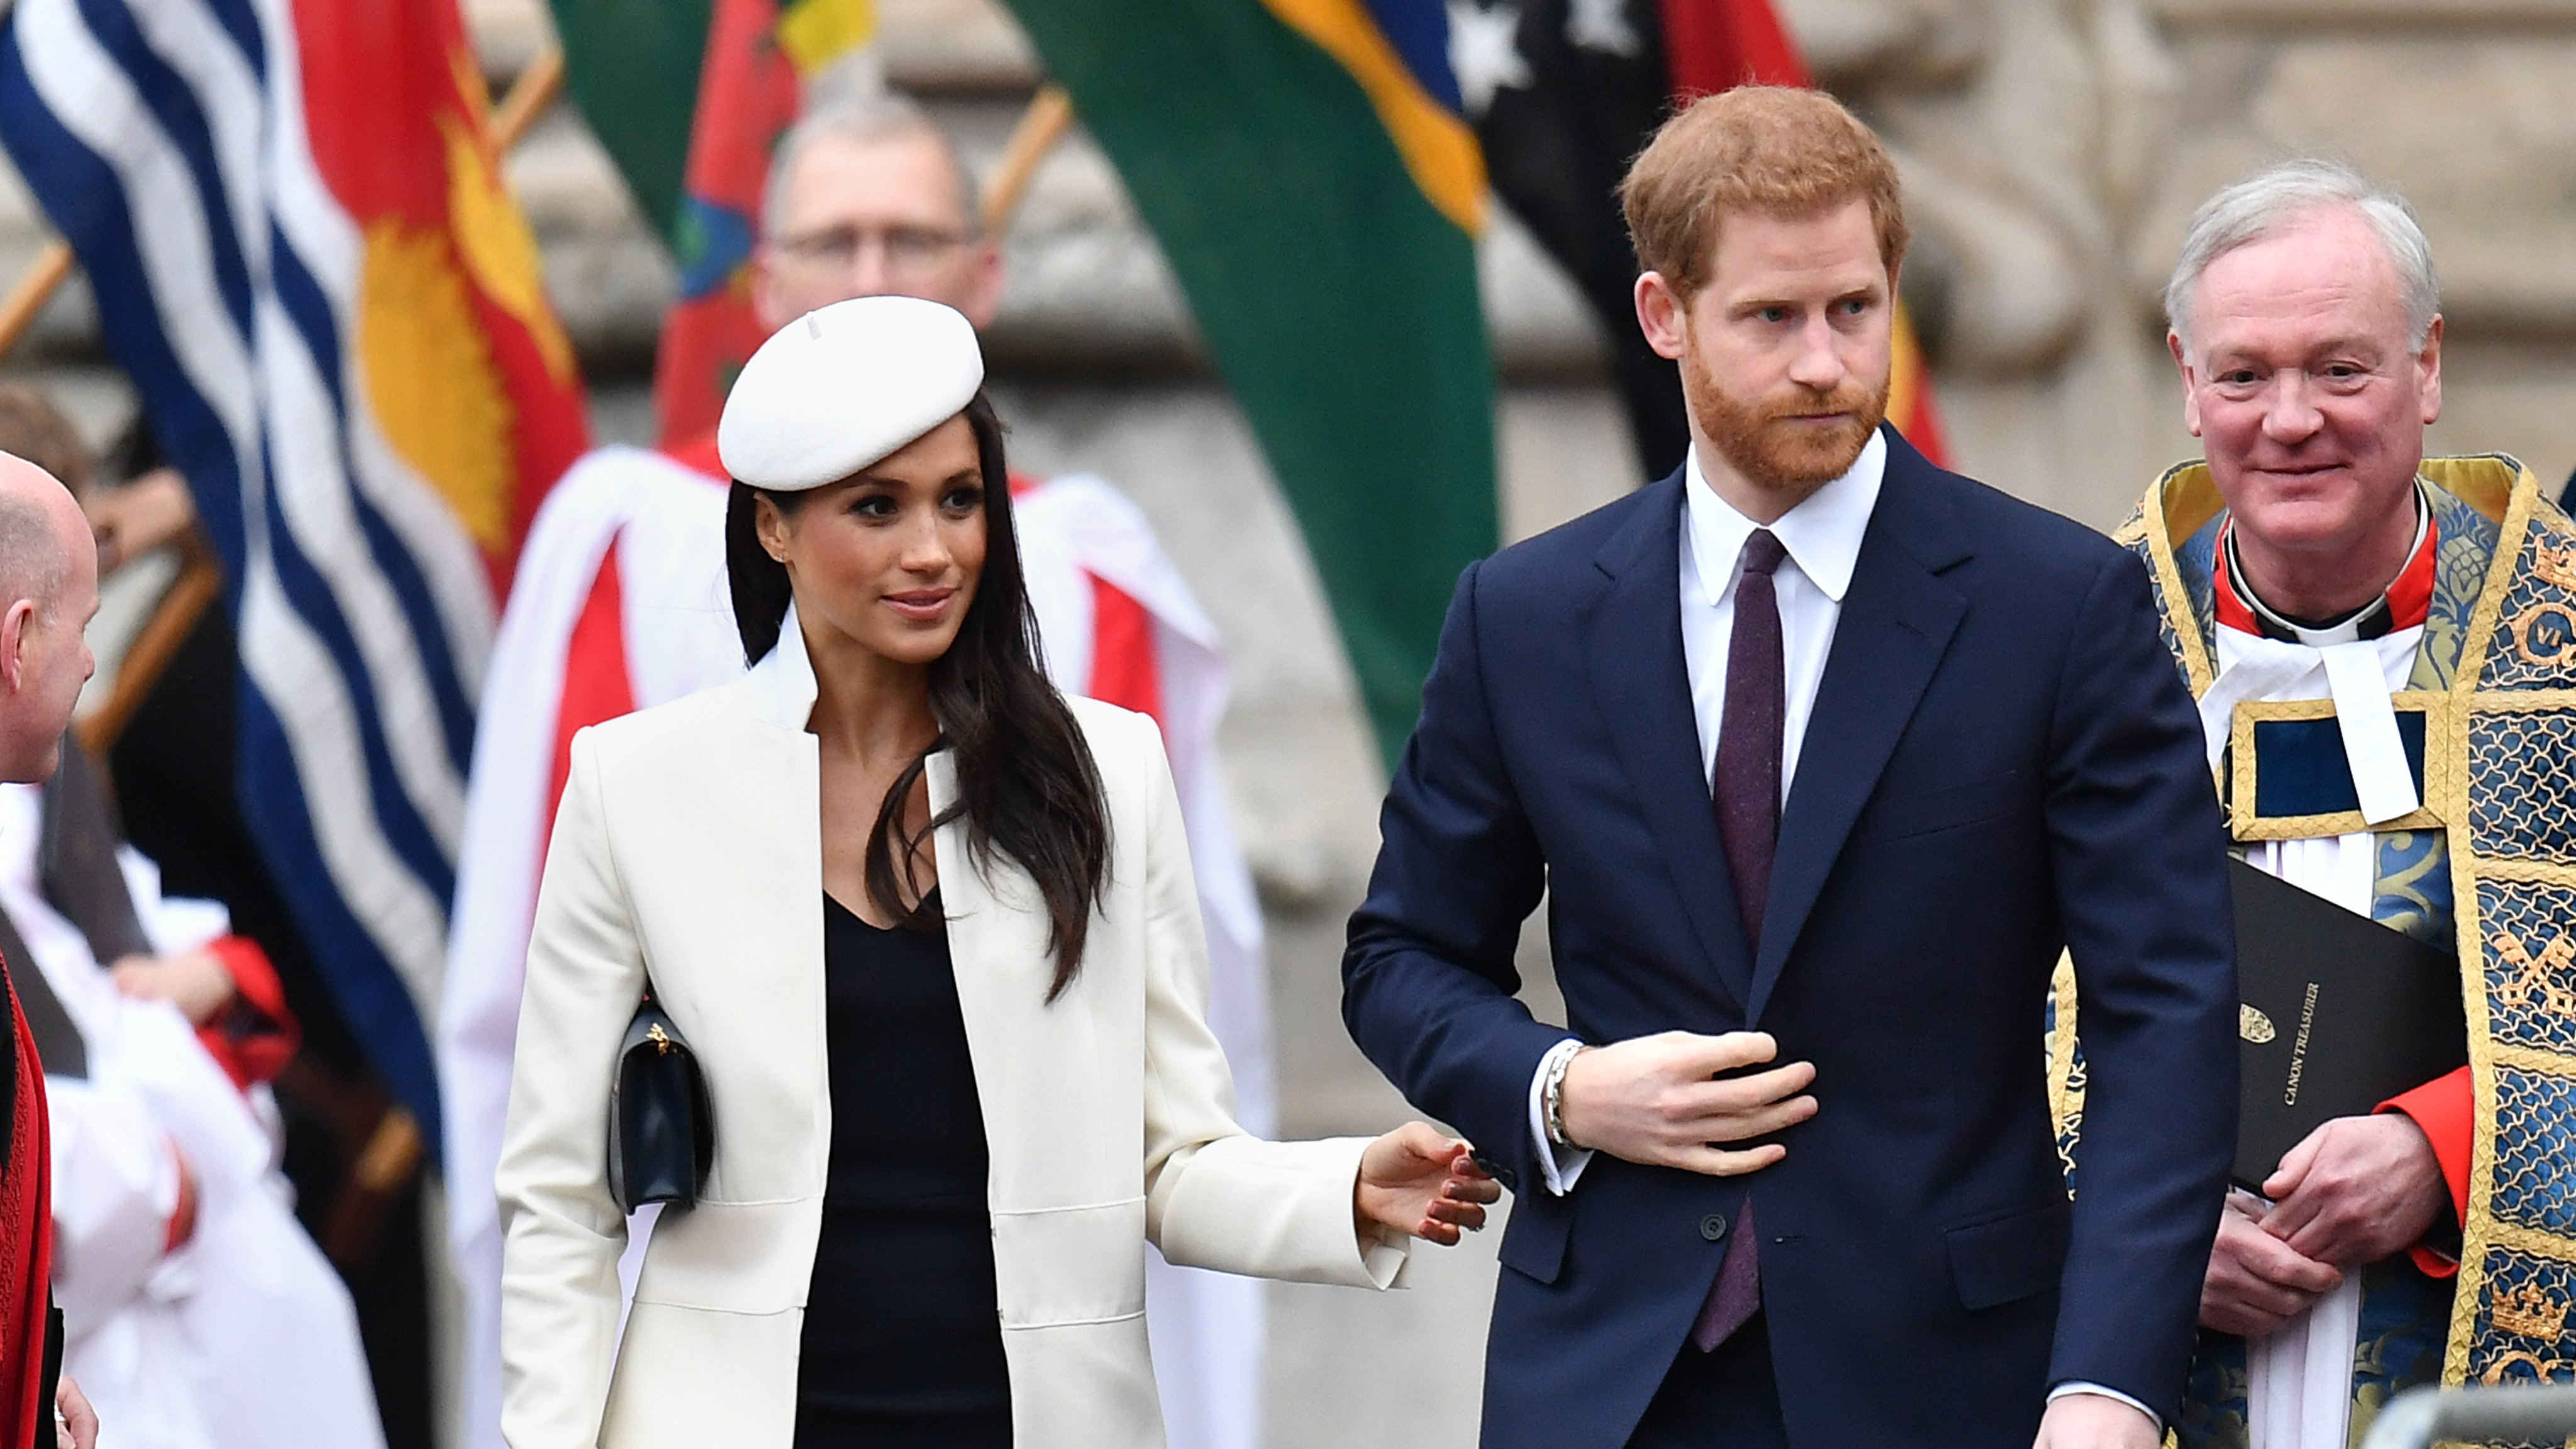 Meghan Markle's Father Is Receiving an Important Honor Before the Royal Wedding Meghan Markle's Father Is Receiving an Important Honor Before the Royal Wedding new pictures